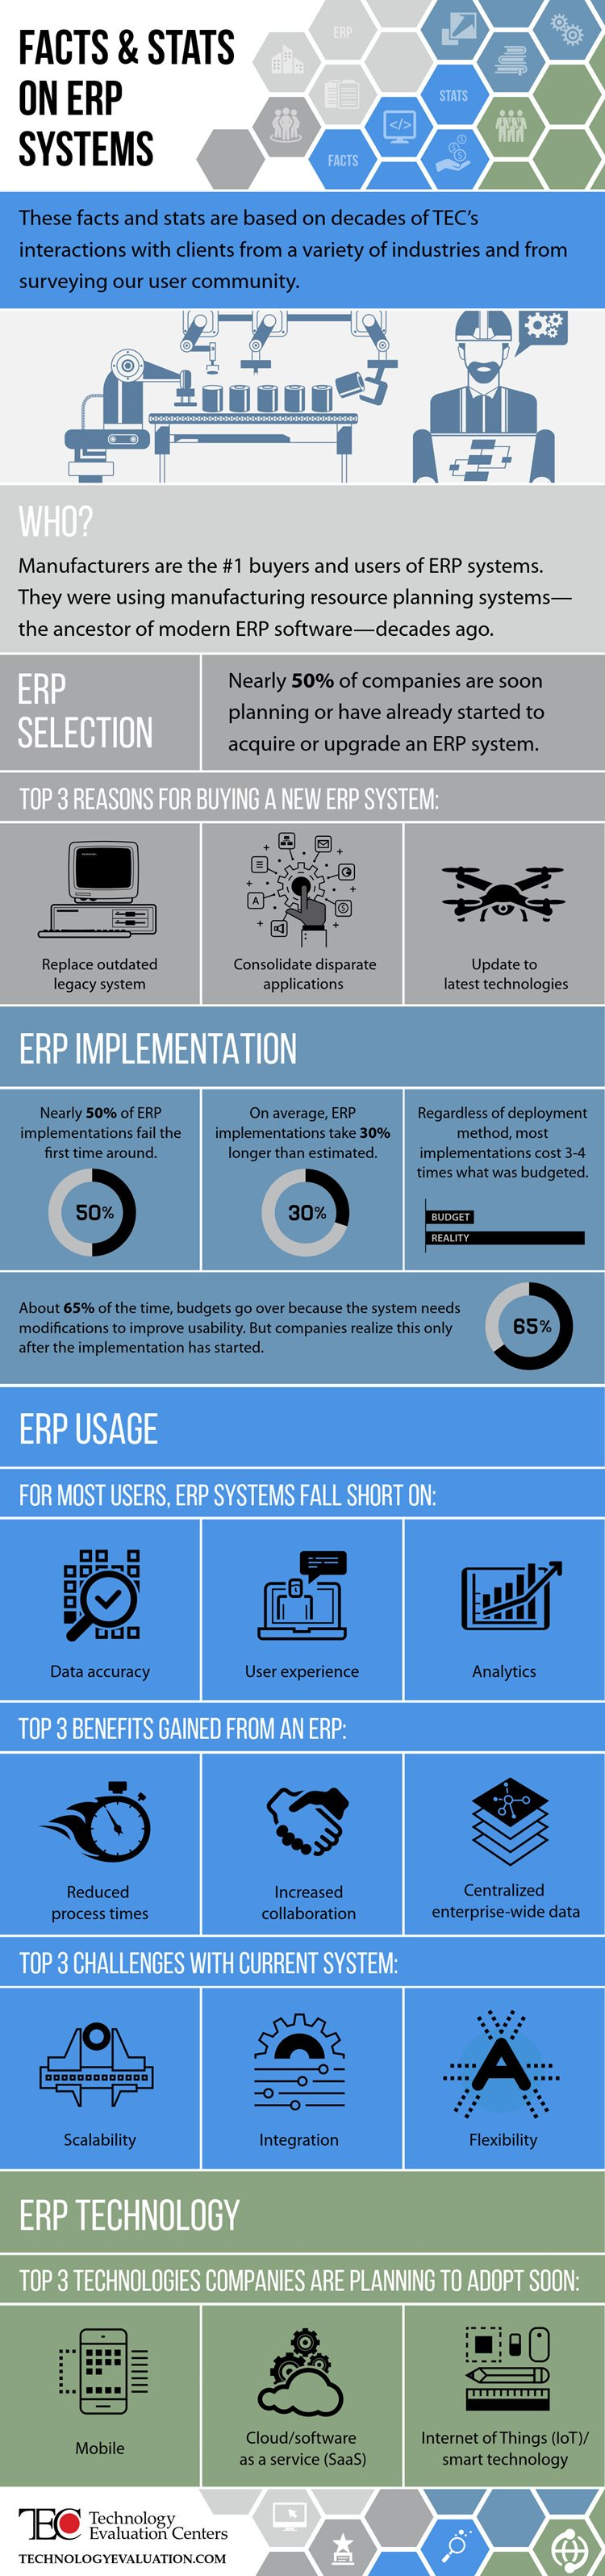 Infographic: Facts & Stats on ERP Systems